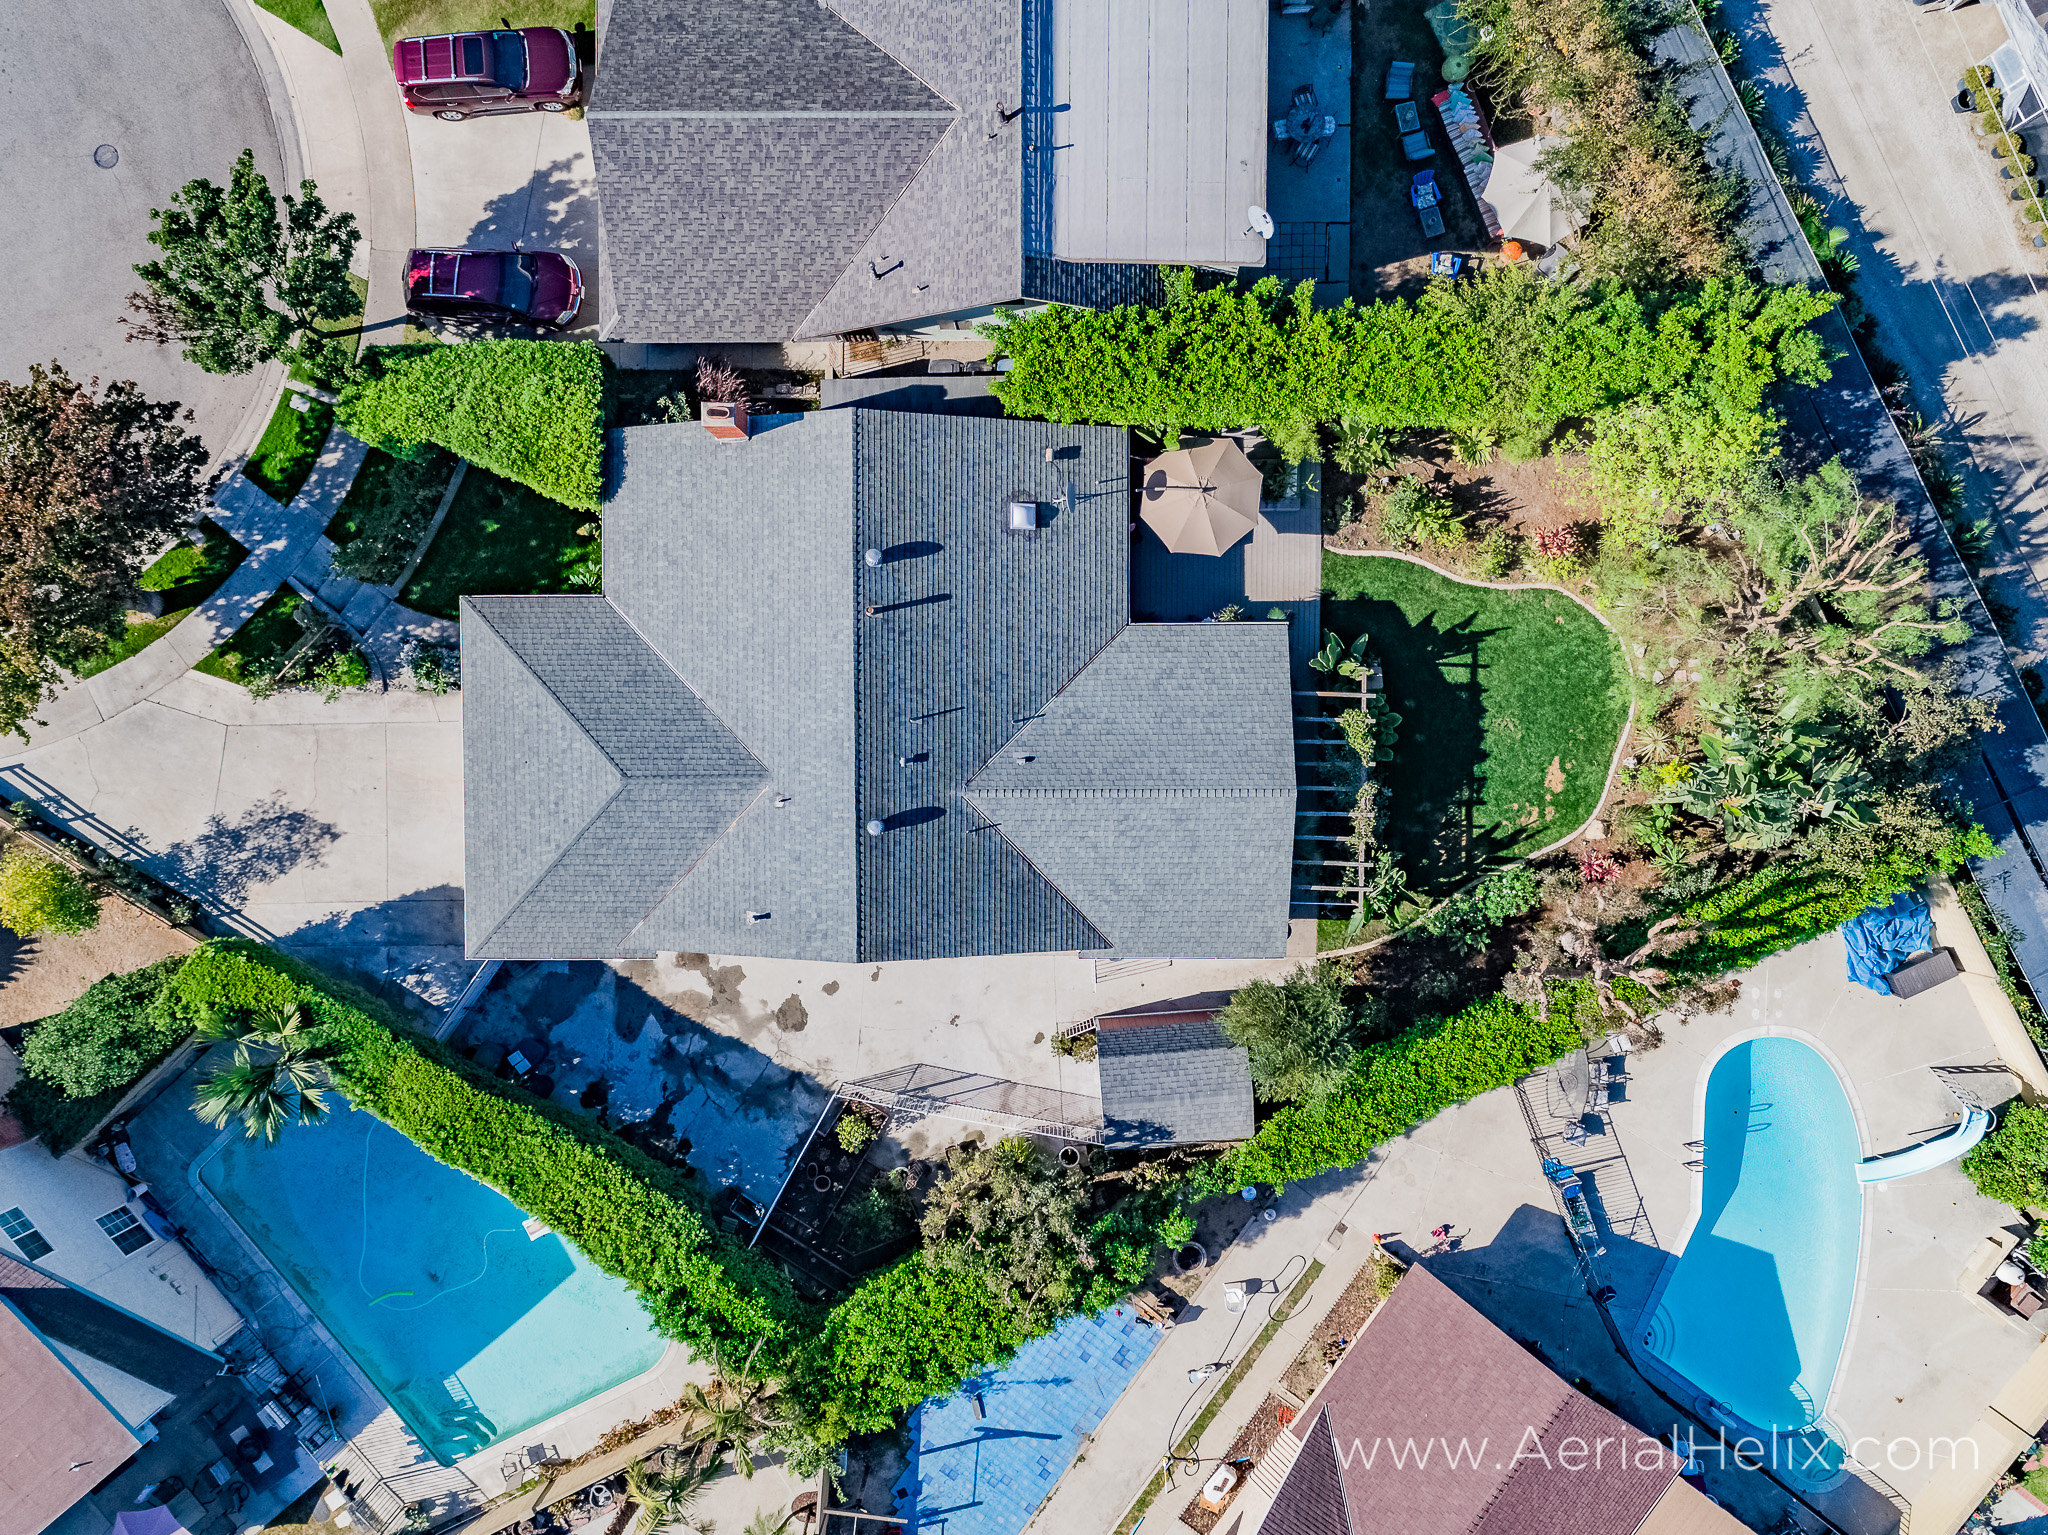 Nancy Cir Aerial - Drone Photographer-2.jpg